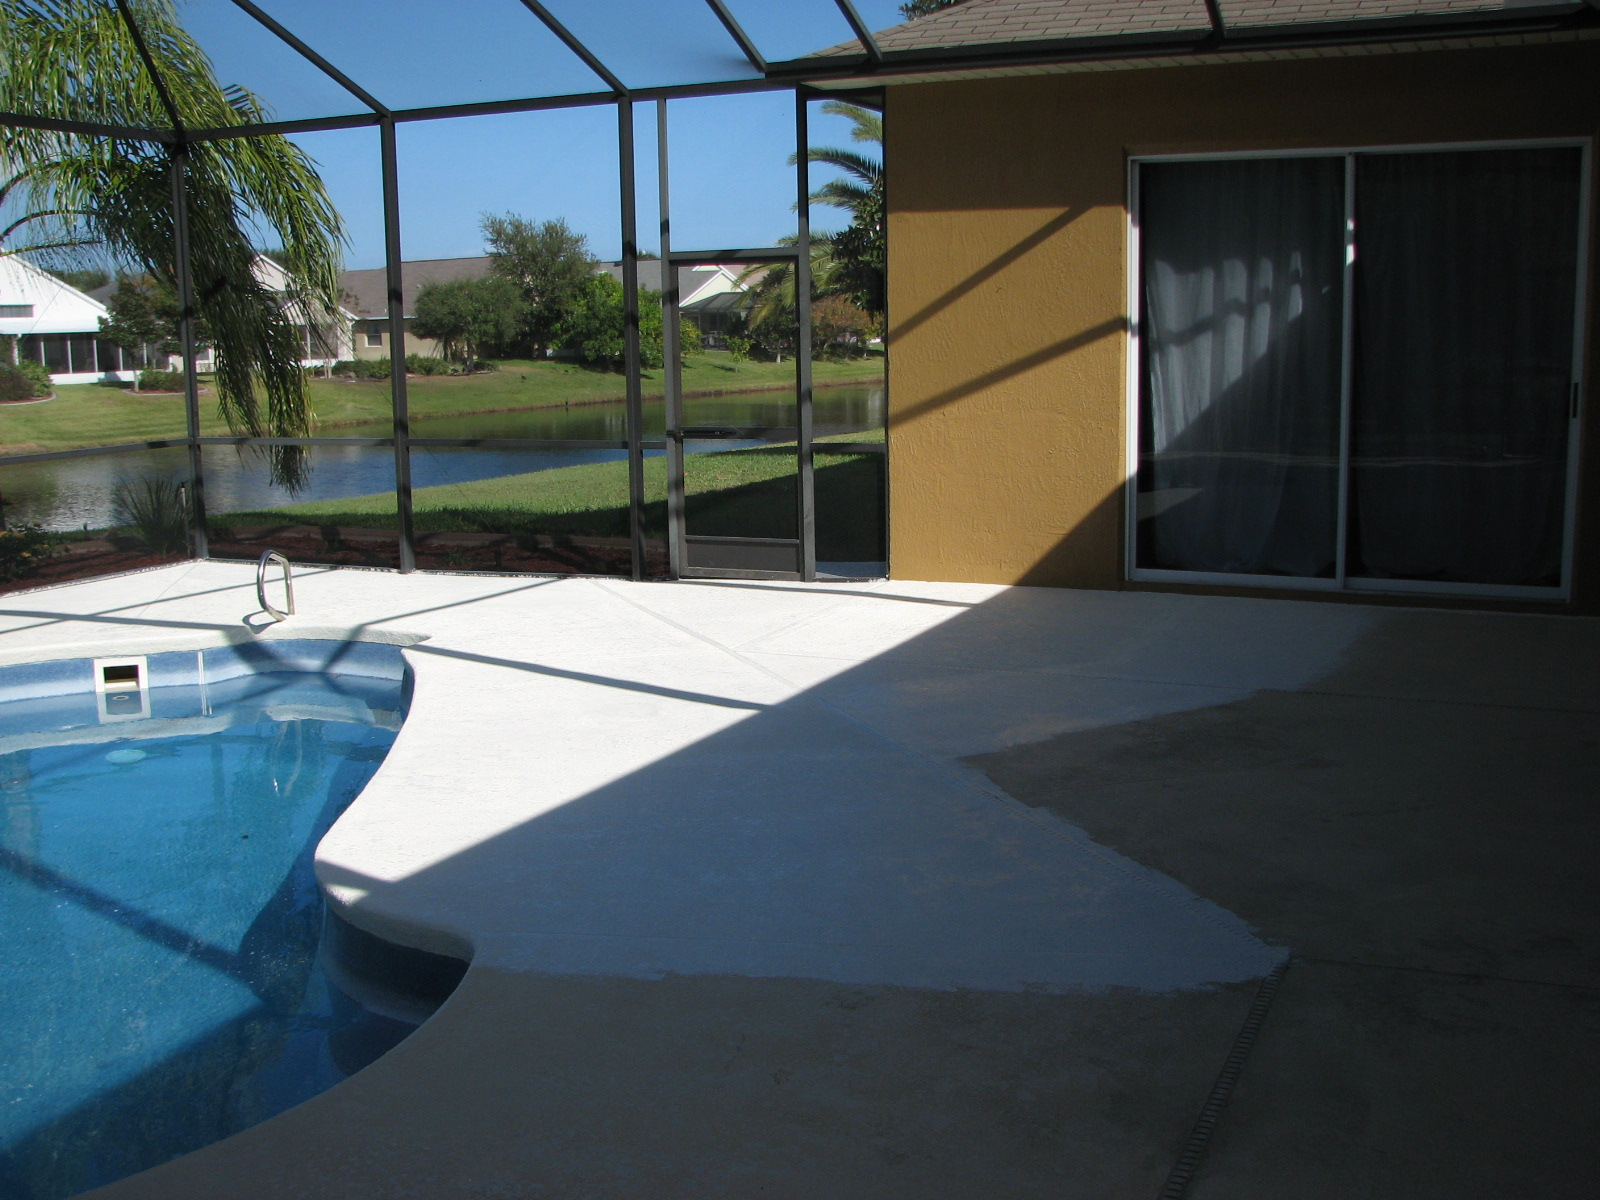 Pool Deck and Lanai Painting-First coat